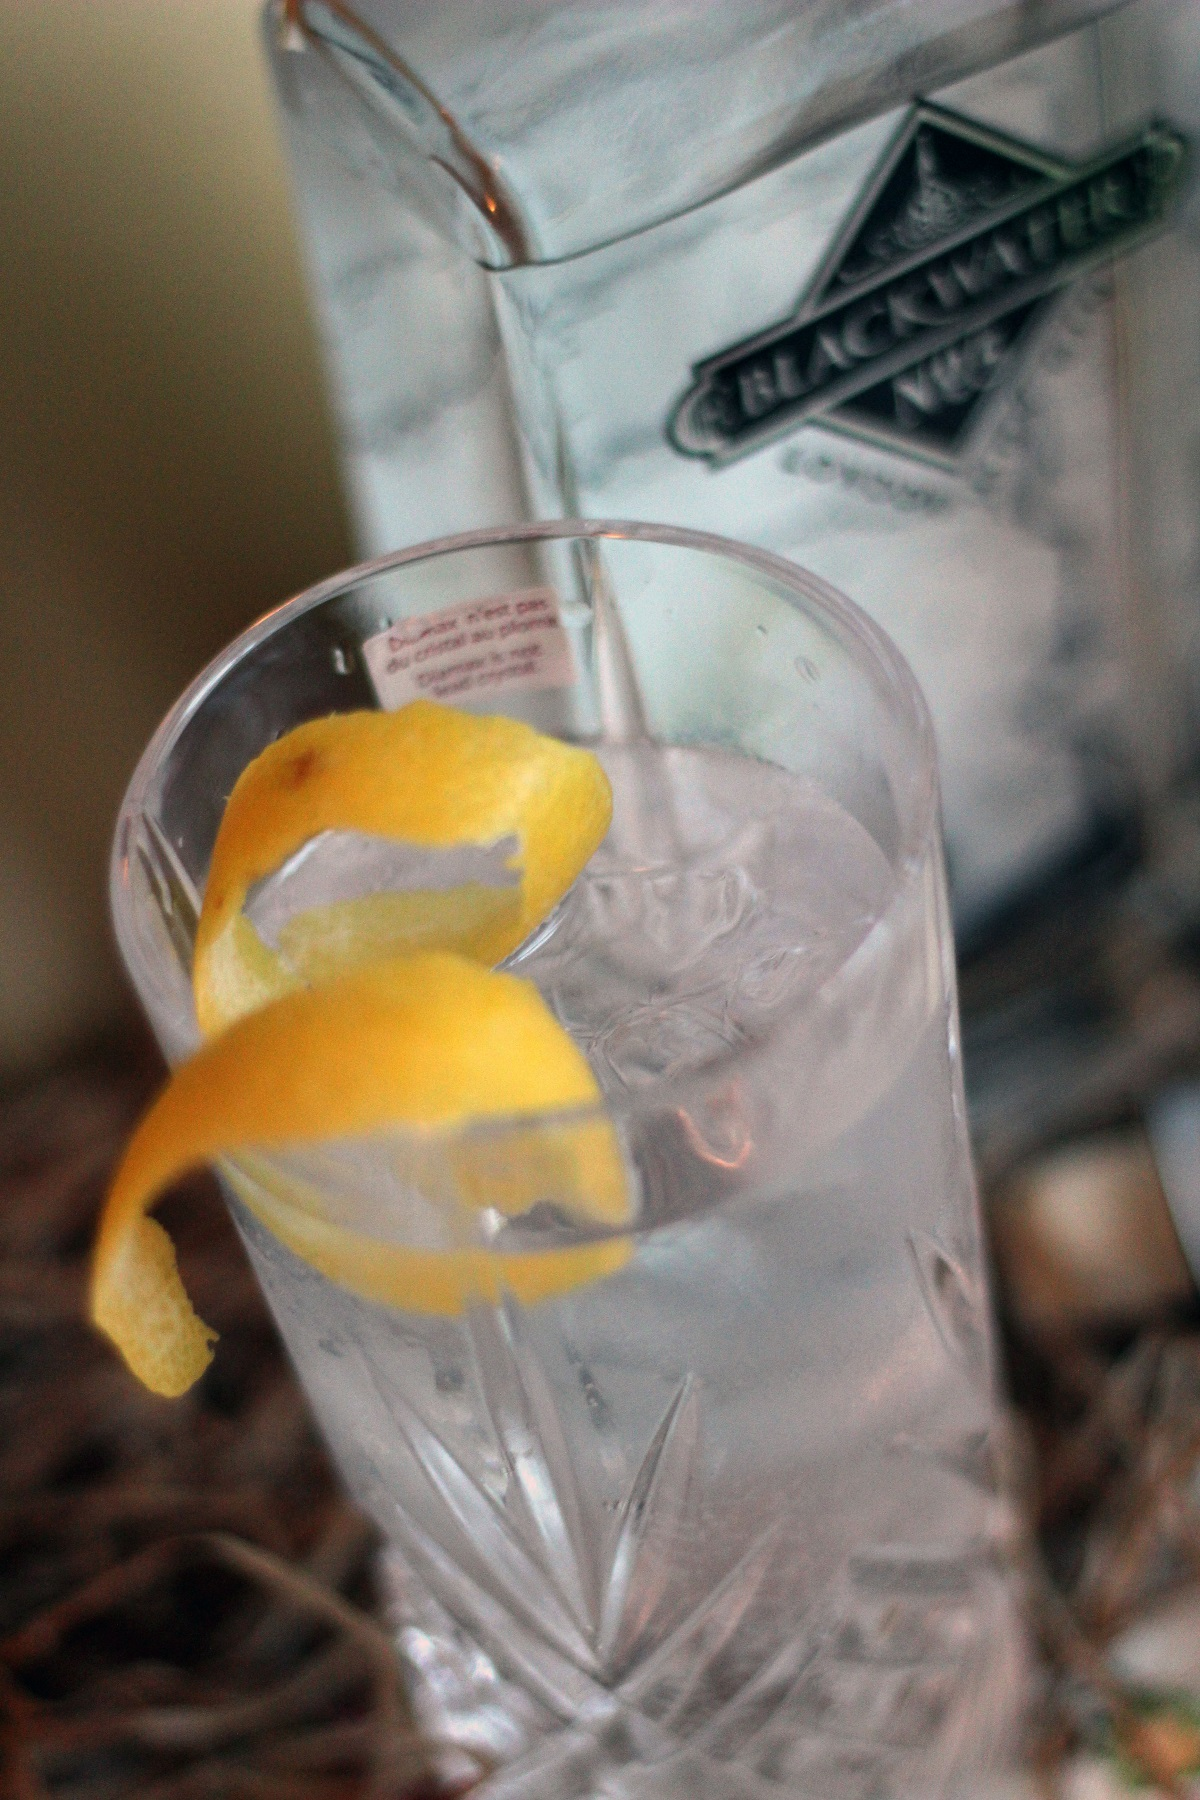 Blackwater Distillery's Nº 5 London Dry Gin